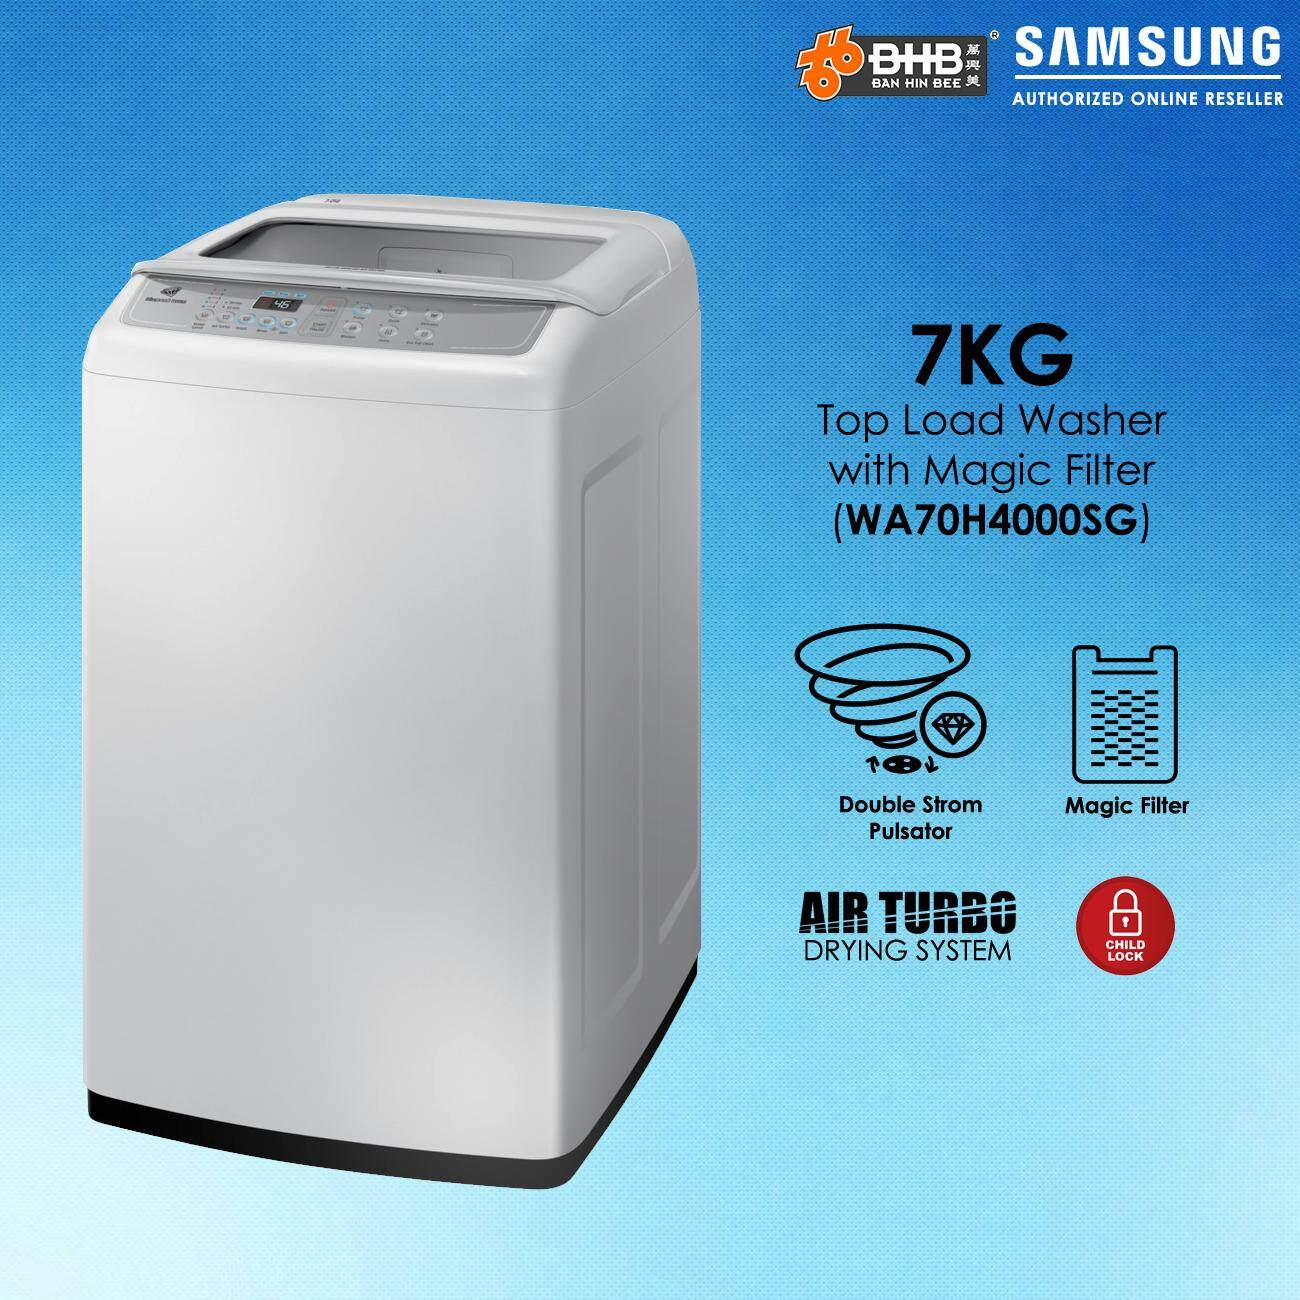 Samsung 7KG Top Load Washer with Magic Filter WA70H4000SG